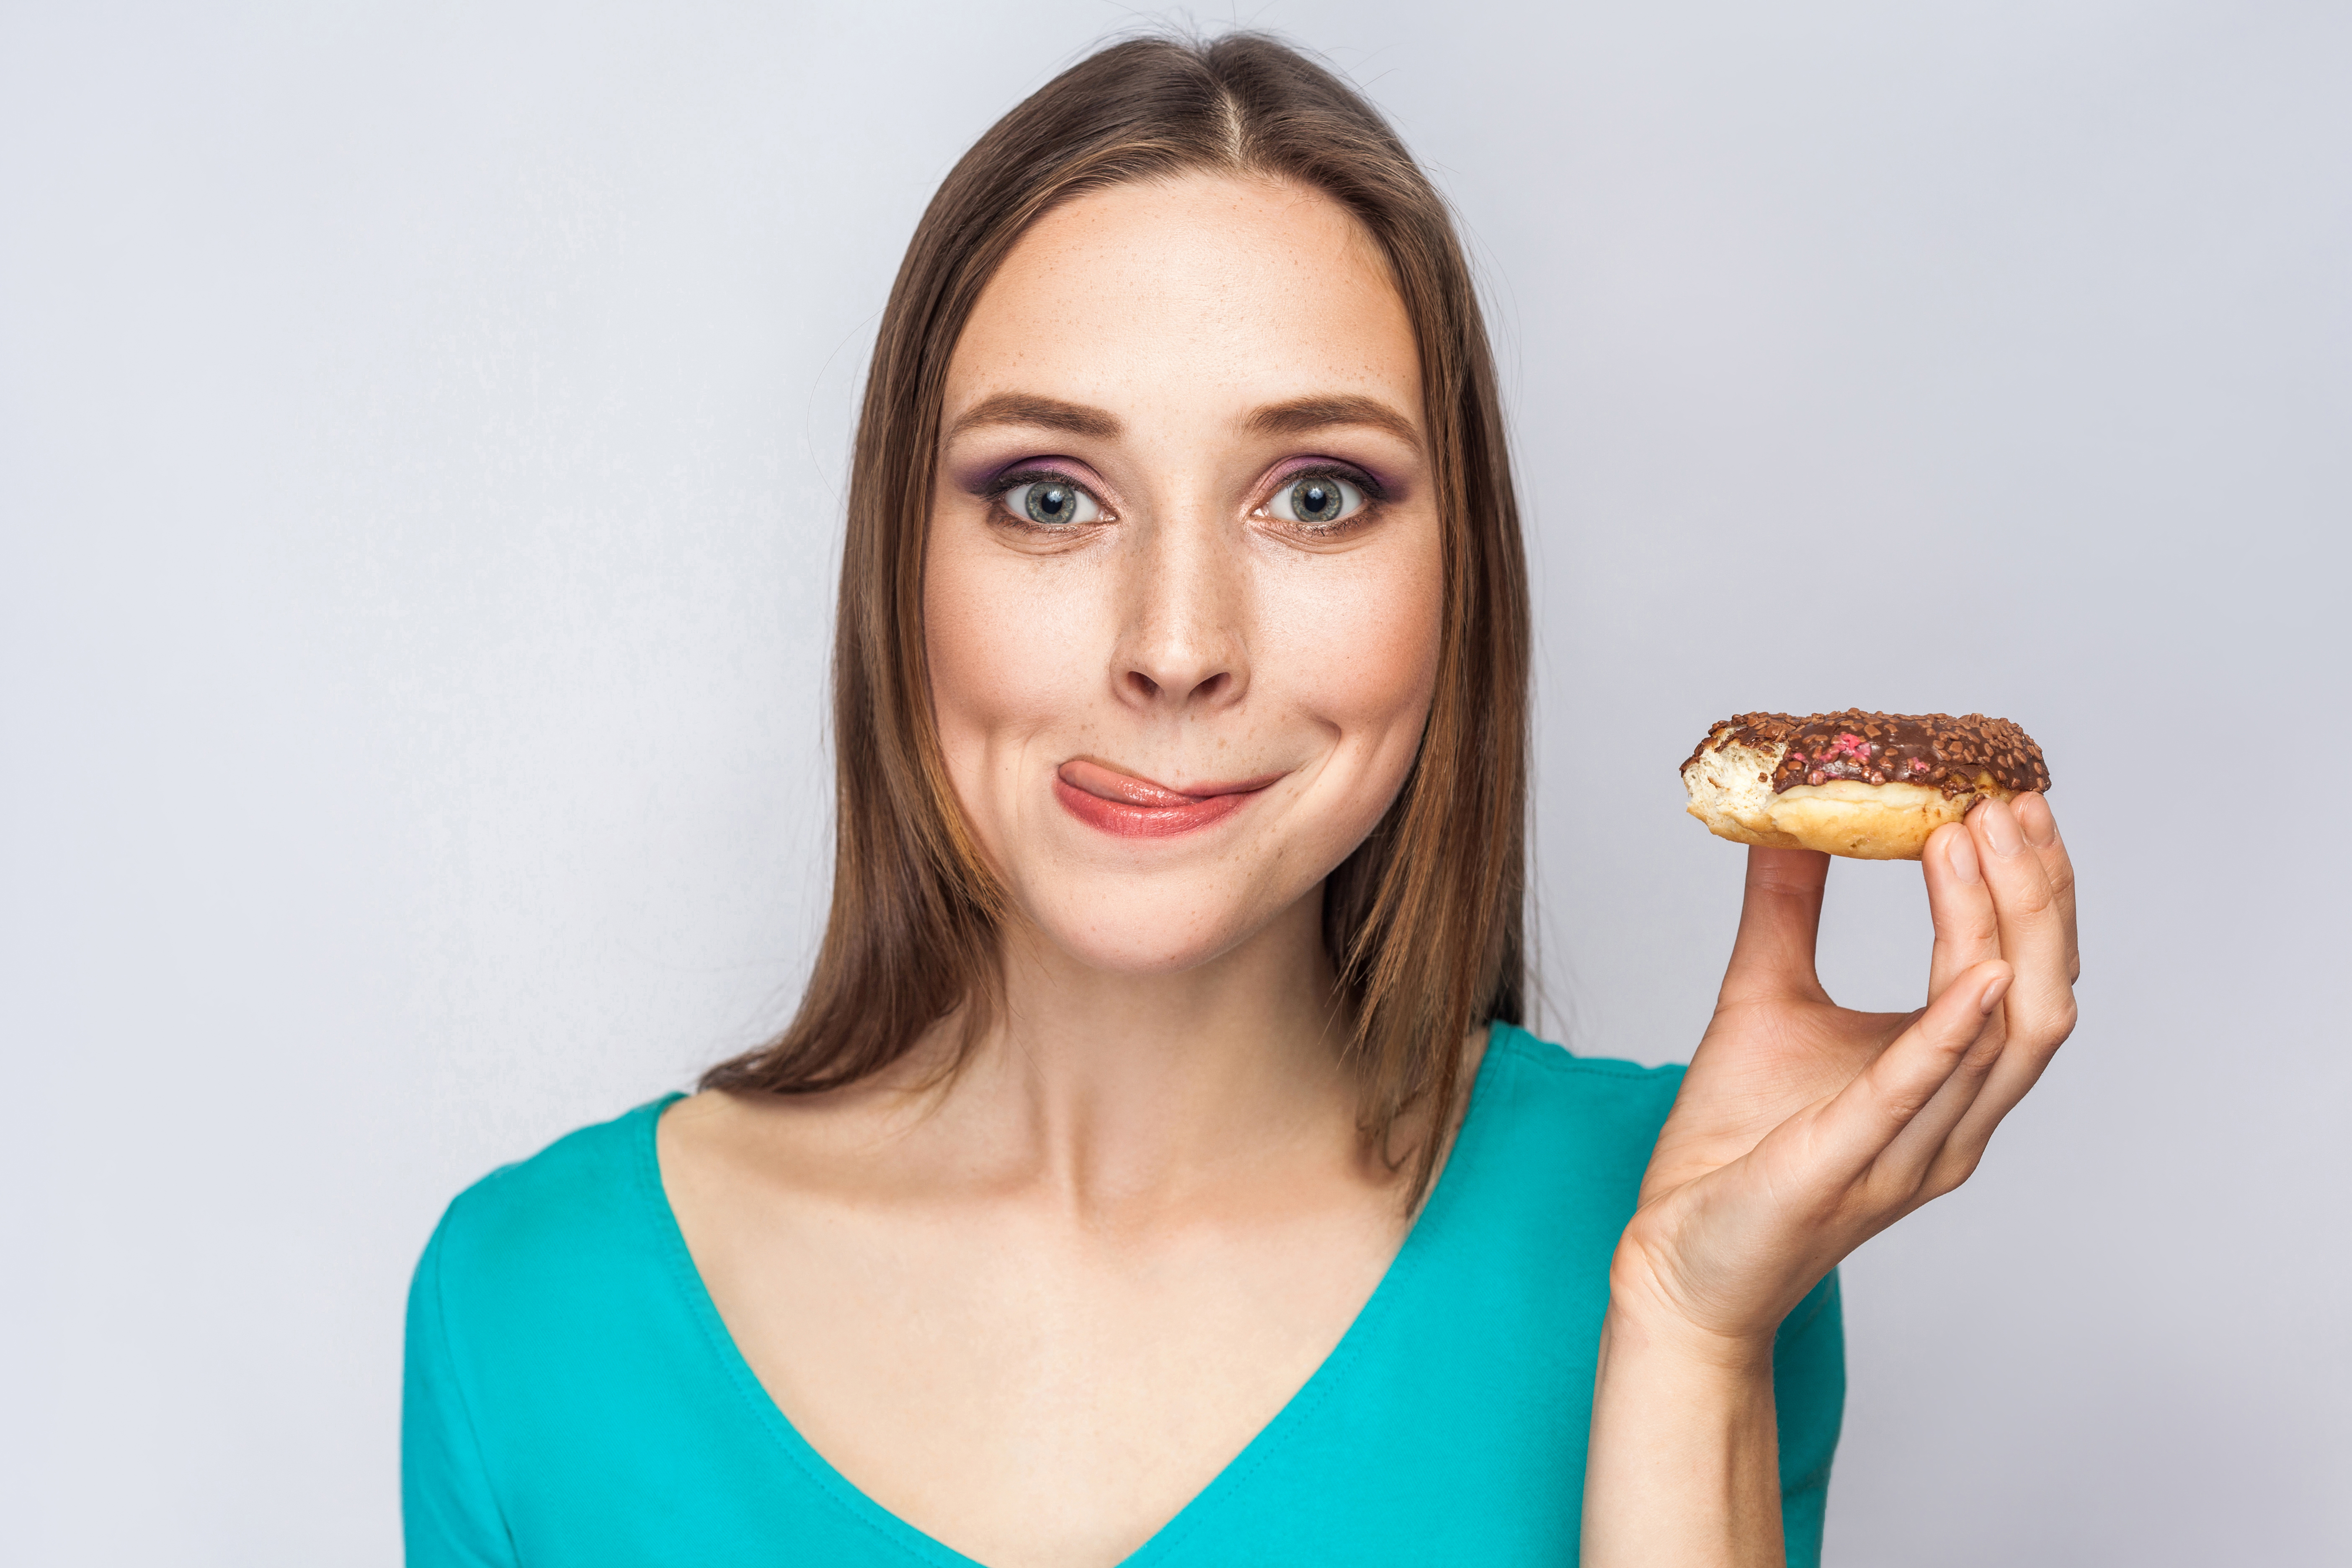 lapar cepat treatment whitening avoid drinks foods after last sugar craving help donuts donna bouche femme penyebab stand trasgressioni istock